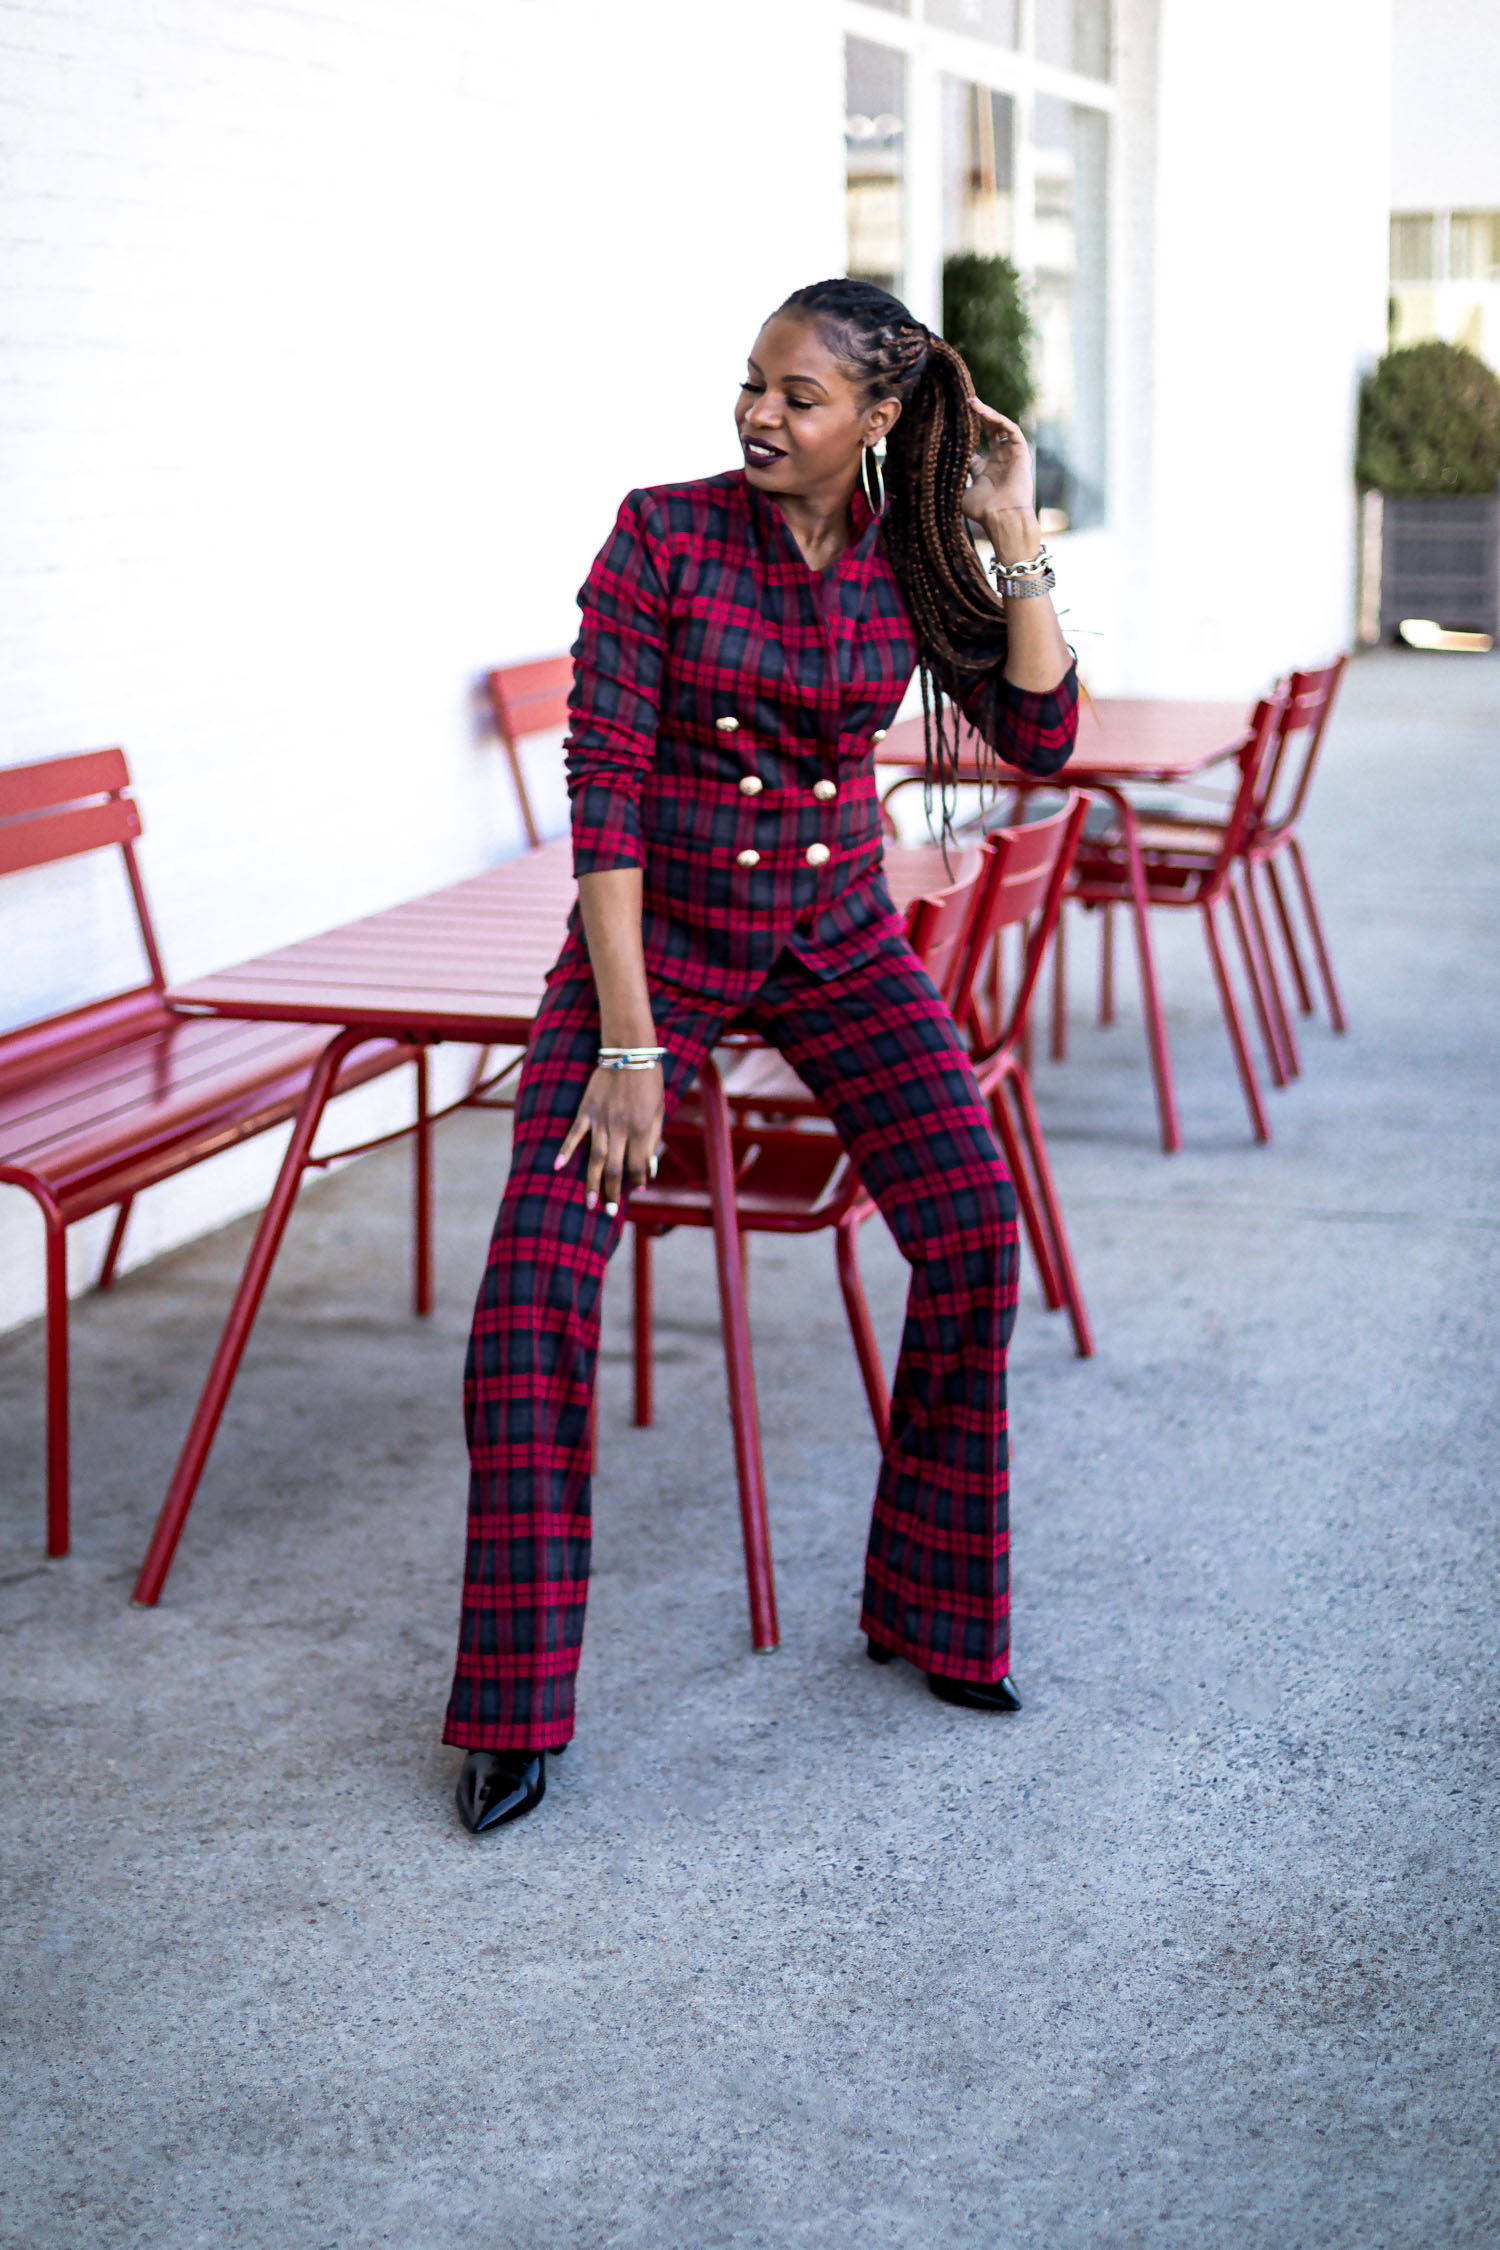 how to wear red during the holidays, how to wear red without being too christmasy, stylish ways to wear red during the holidays, how to style a red christmas sweater , top atlanta blogger wearing scoop for walmart red plaid suit, bottega bag